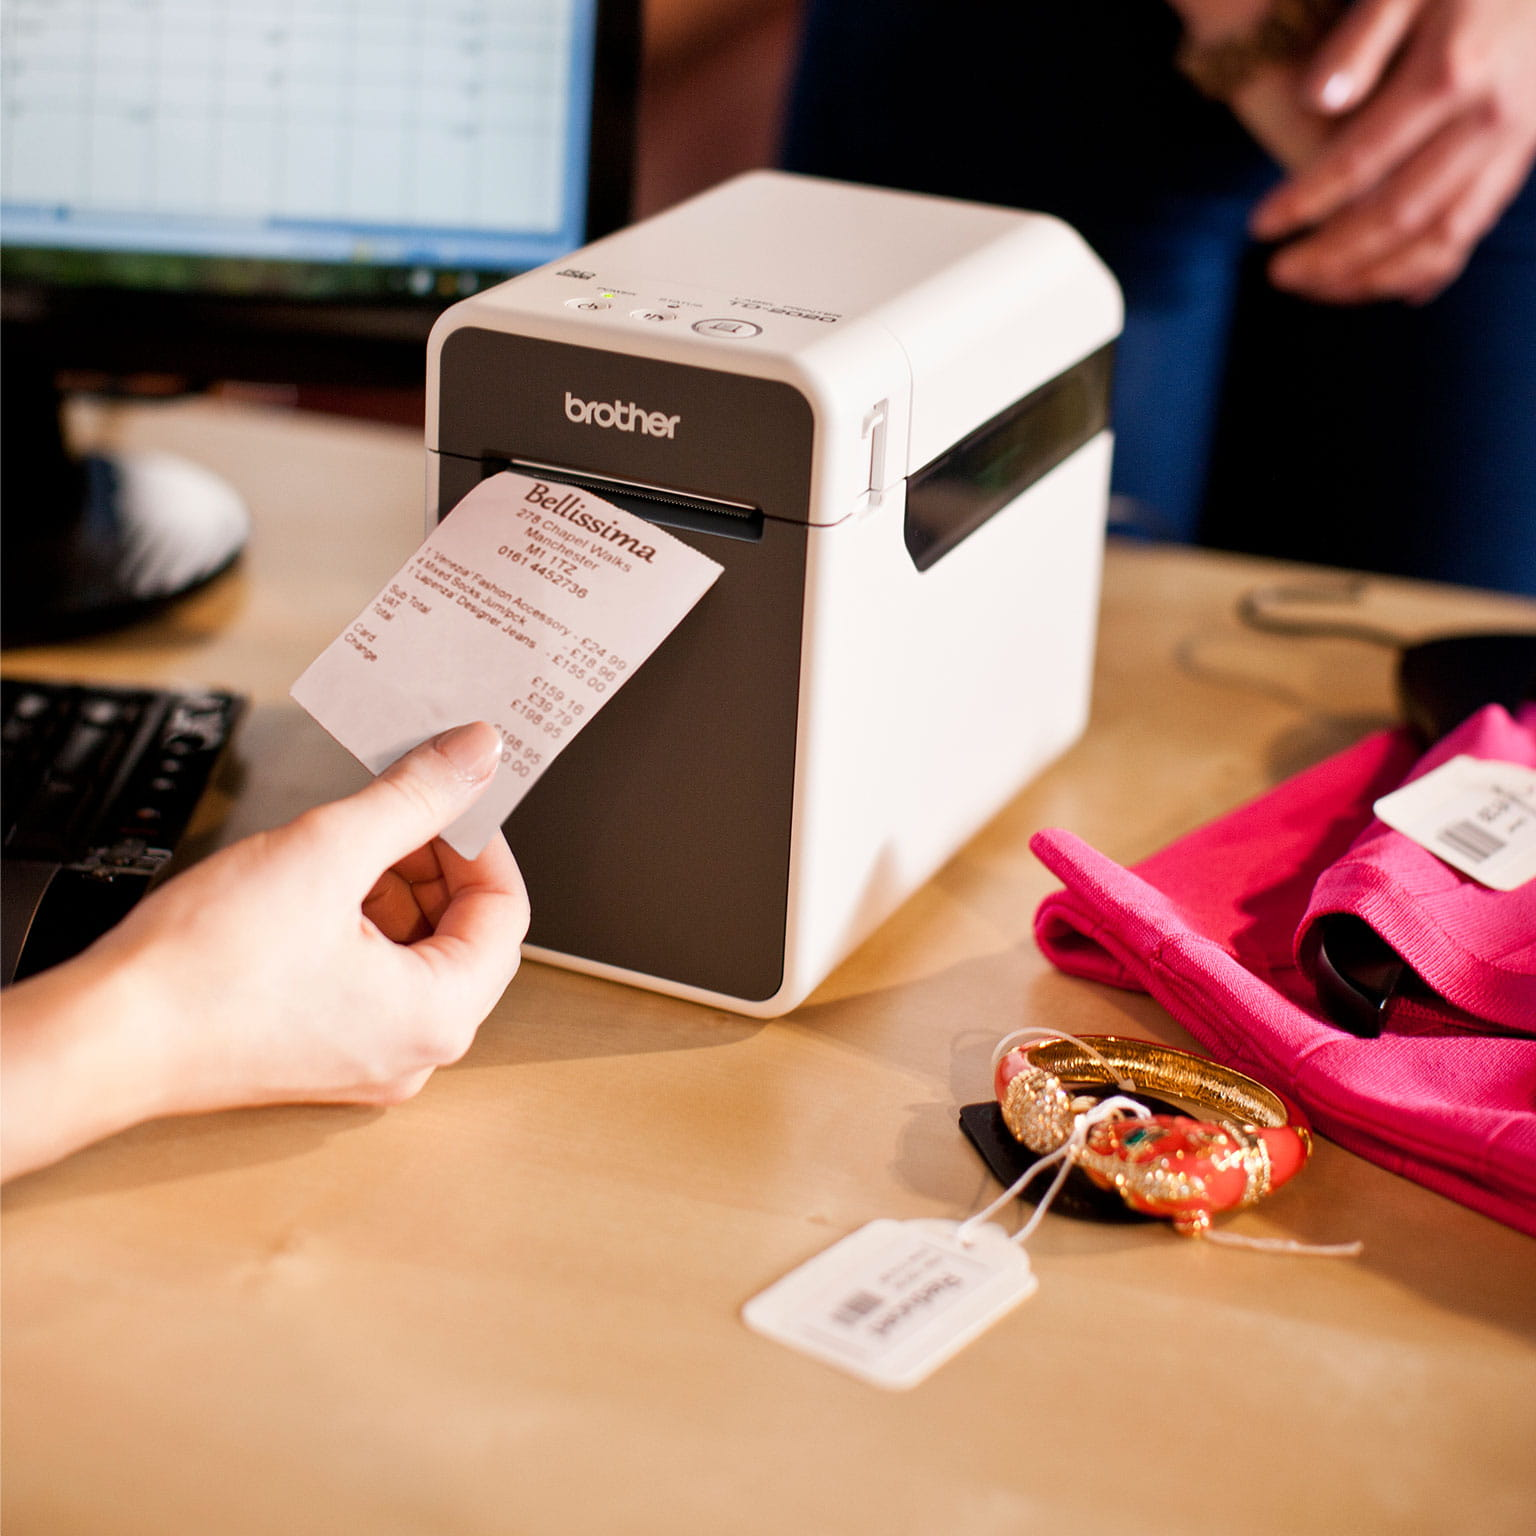 A Brother portable label printer being used by shop assistant to print price labels in a clothes shop